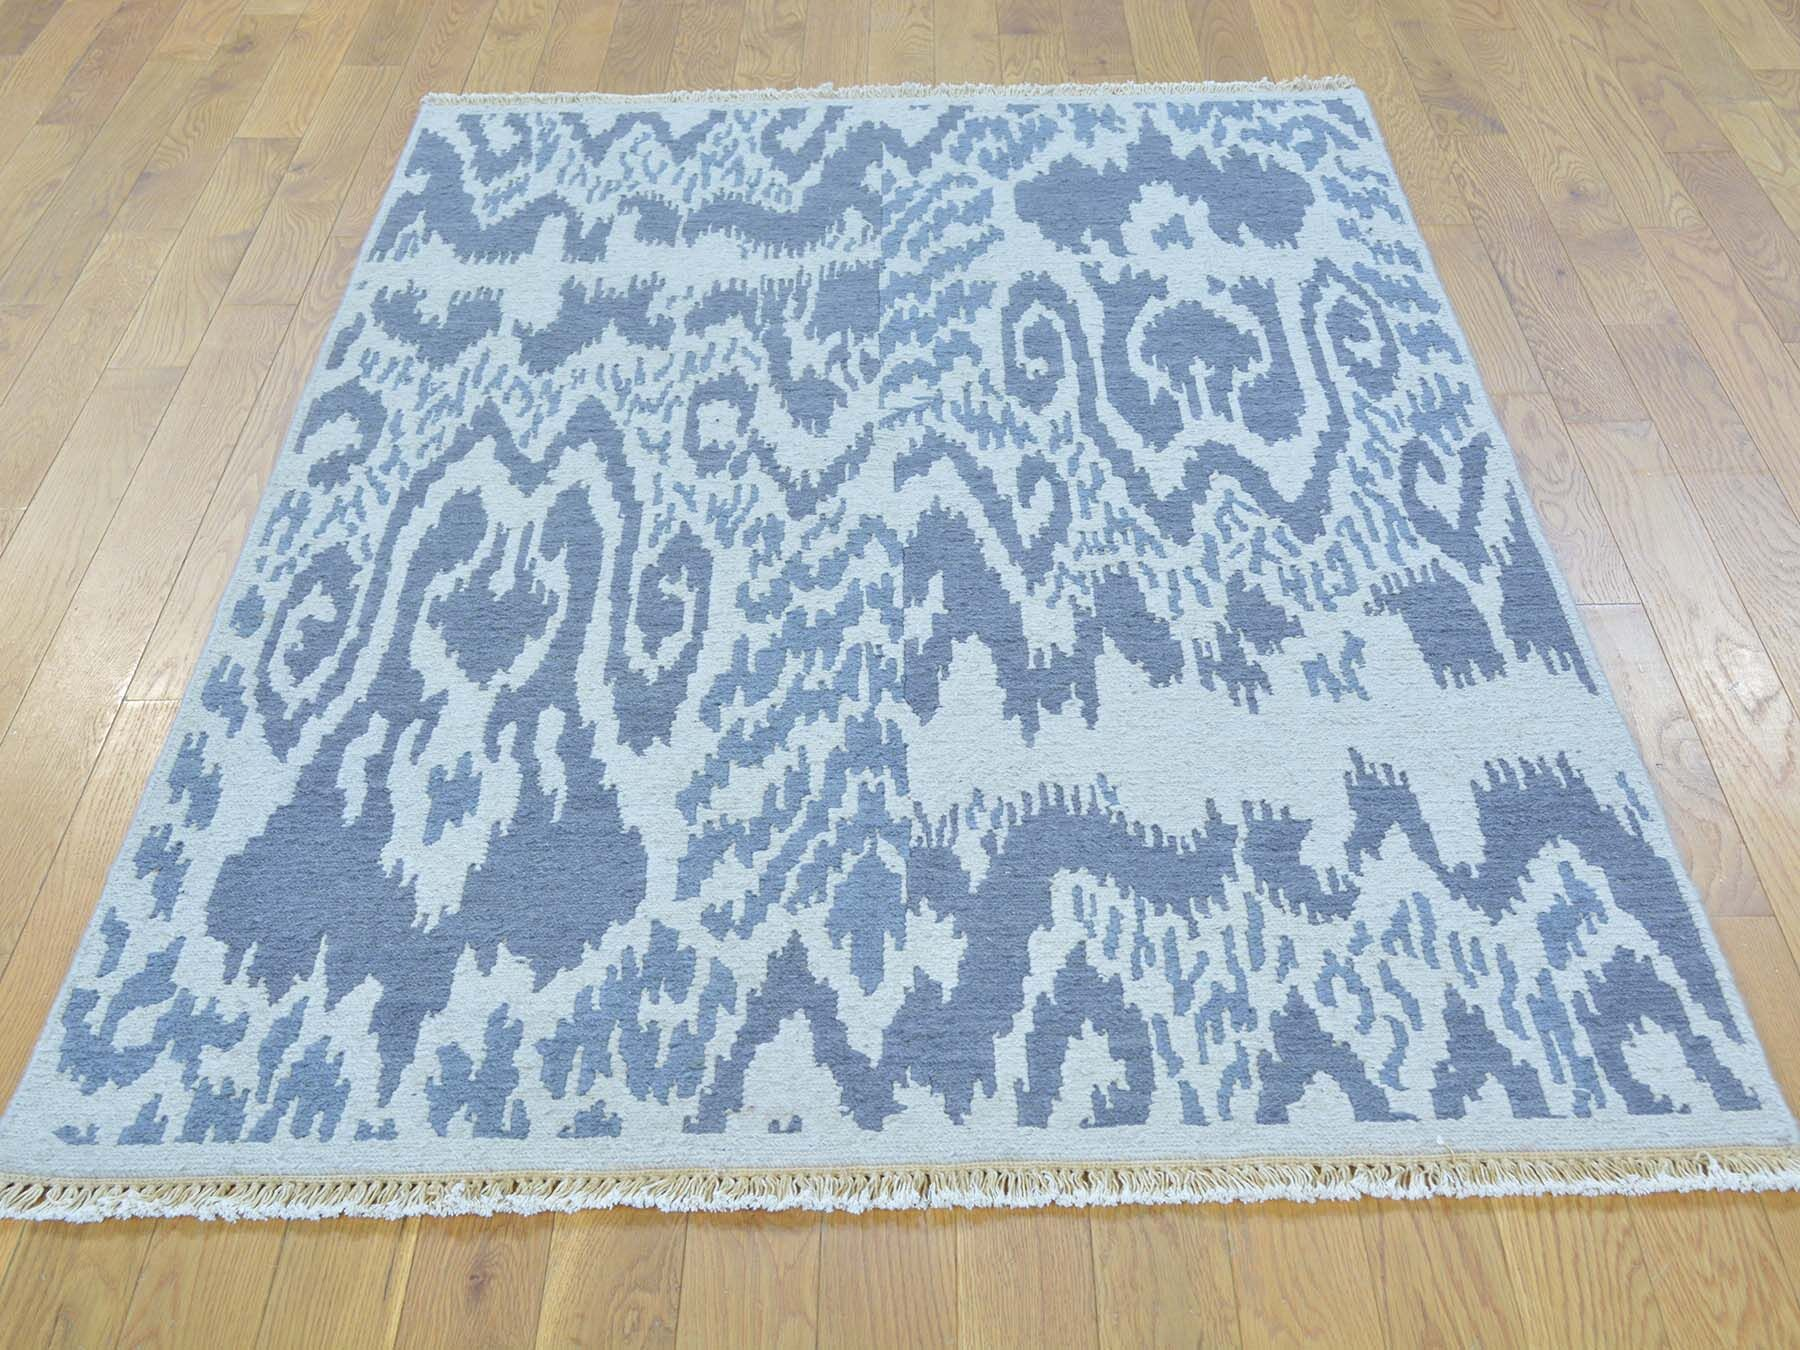 One-of-a-Kind Blatt Soumak With Ikat Design Handwoven Gray Wool Area Rug